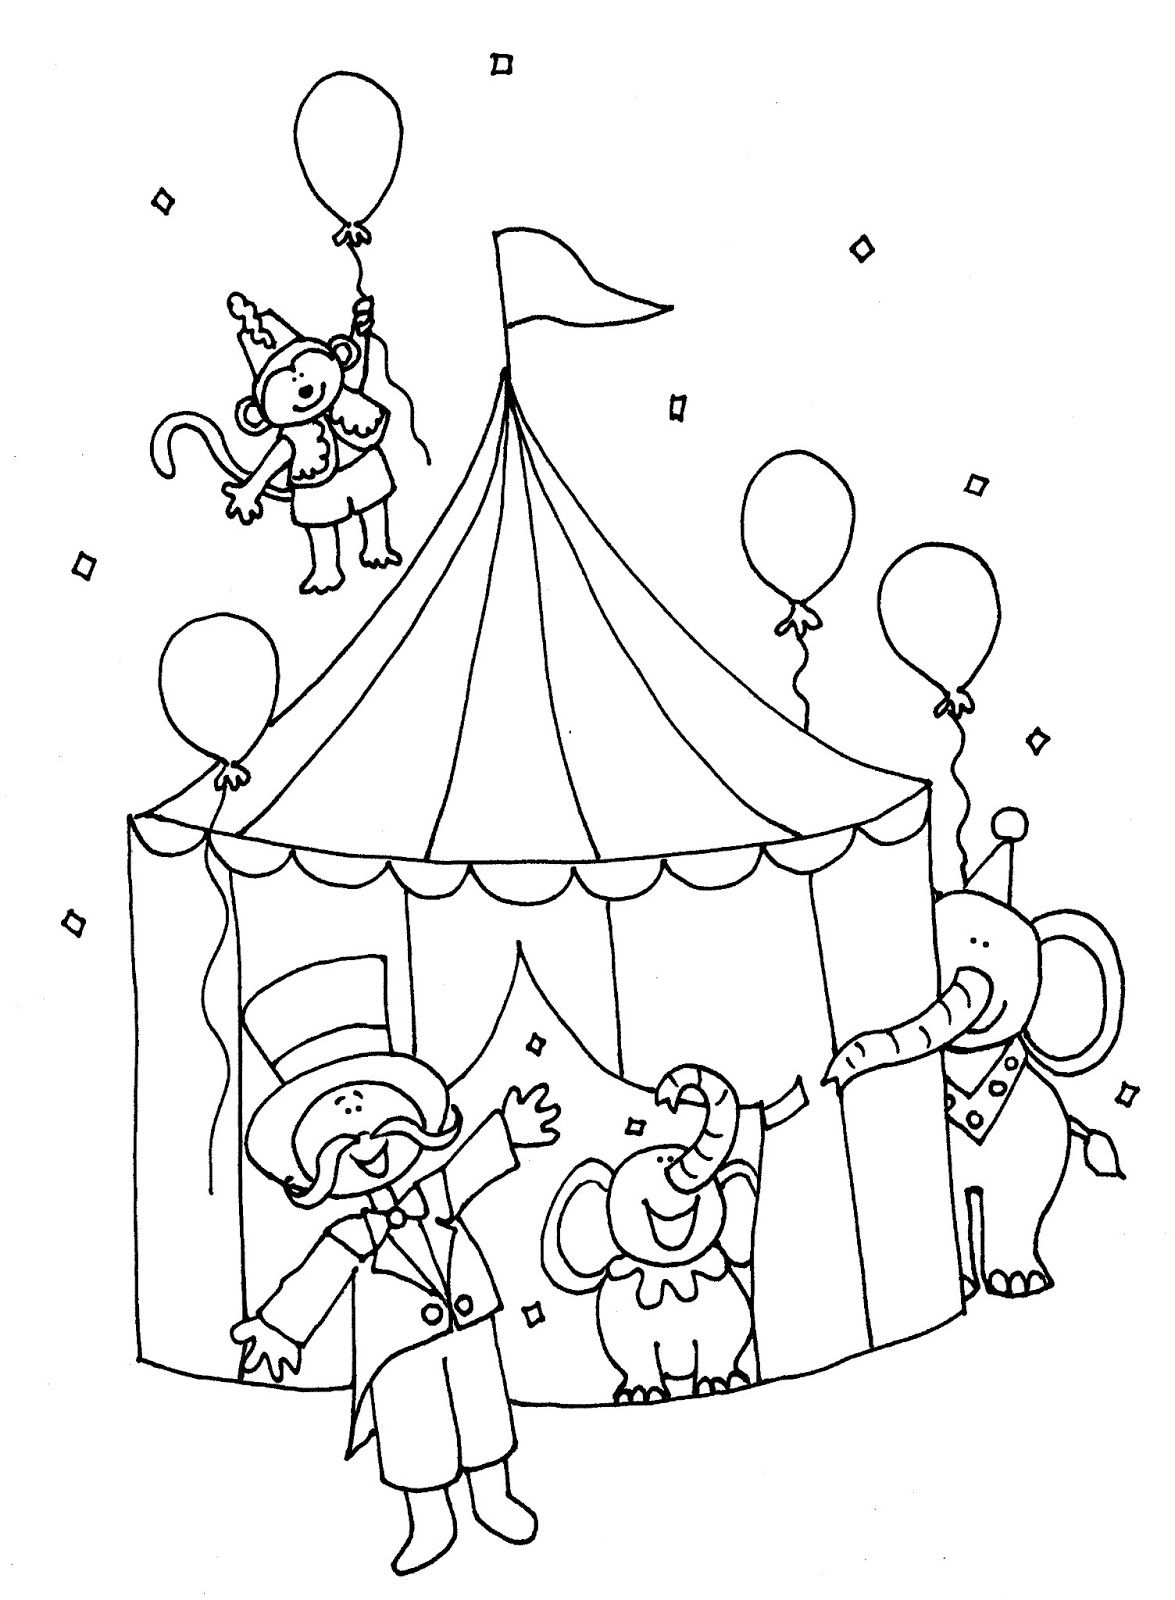 tent coloring page, printable tent coloring page, free tent coloring ...